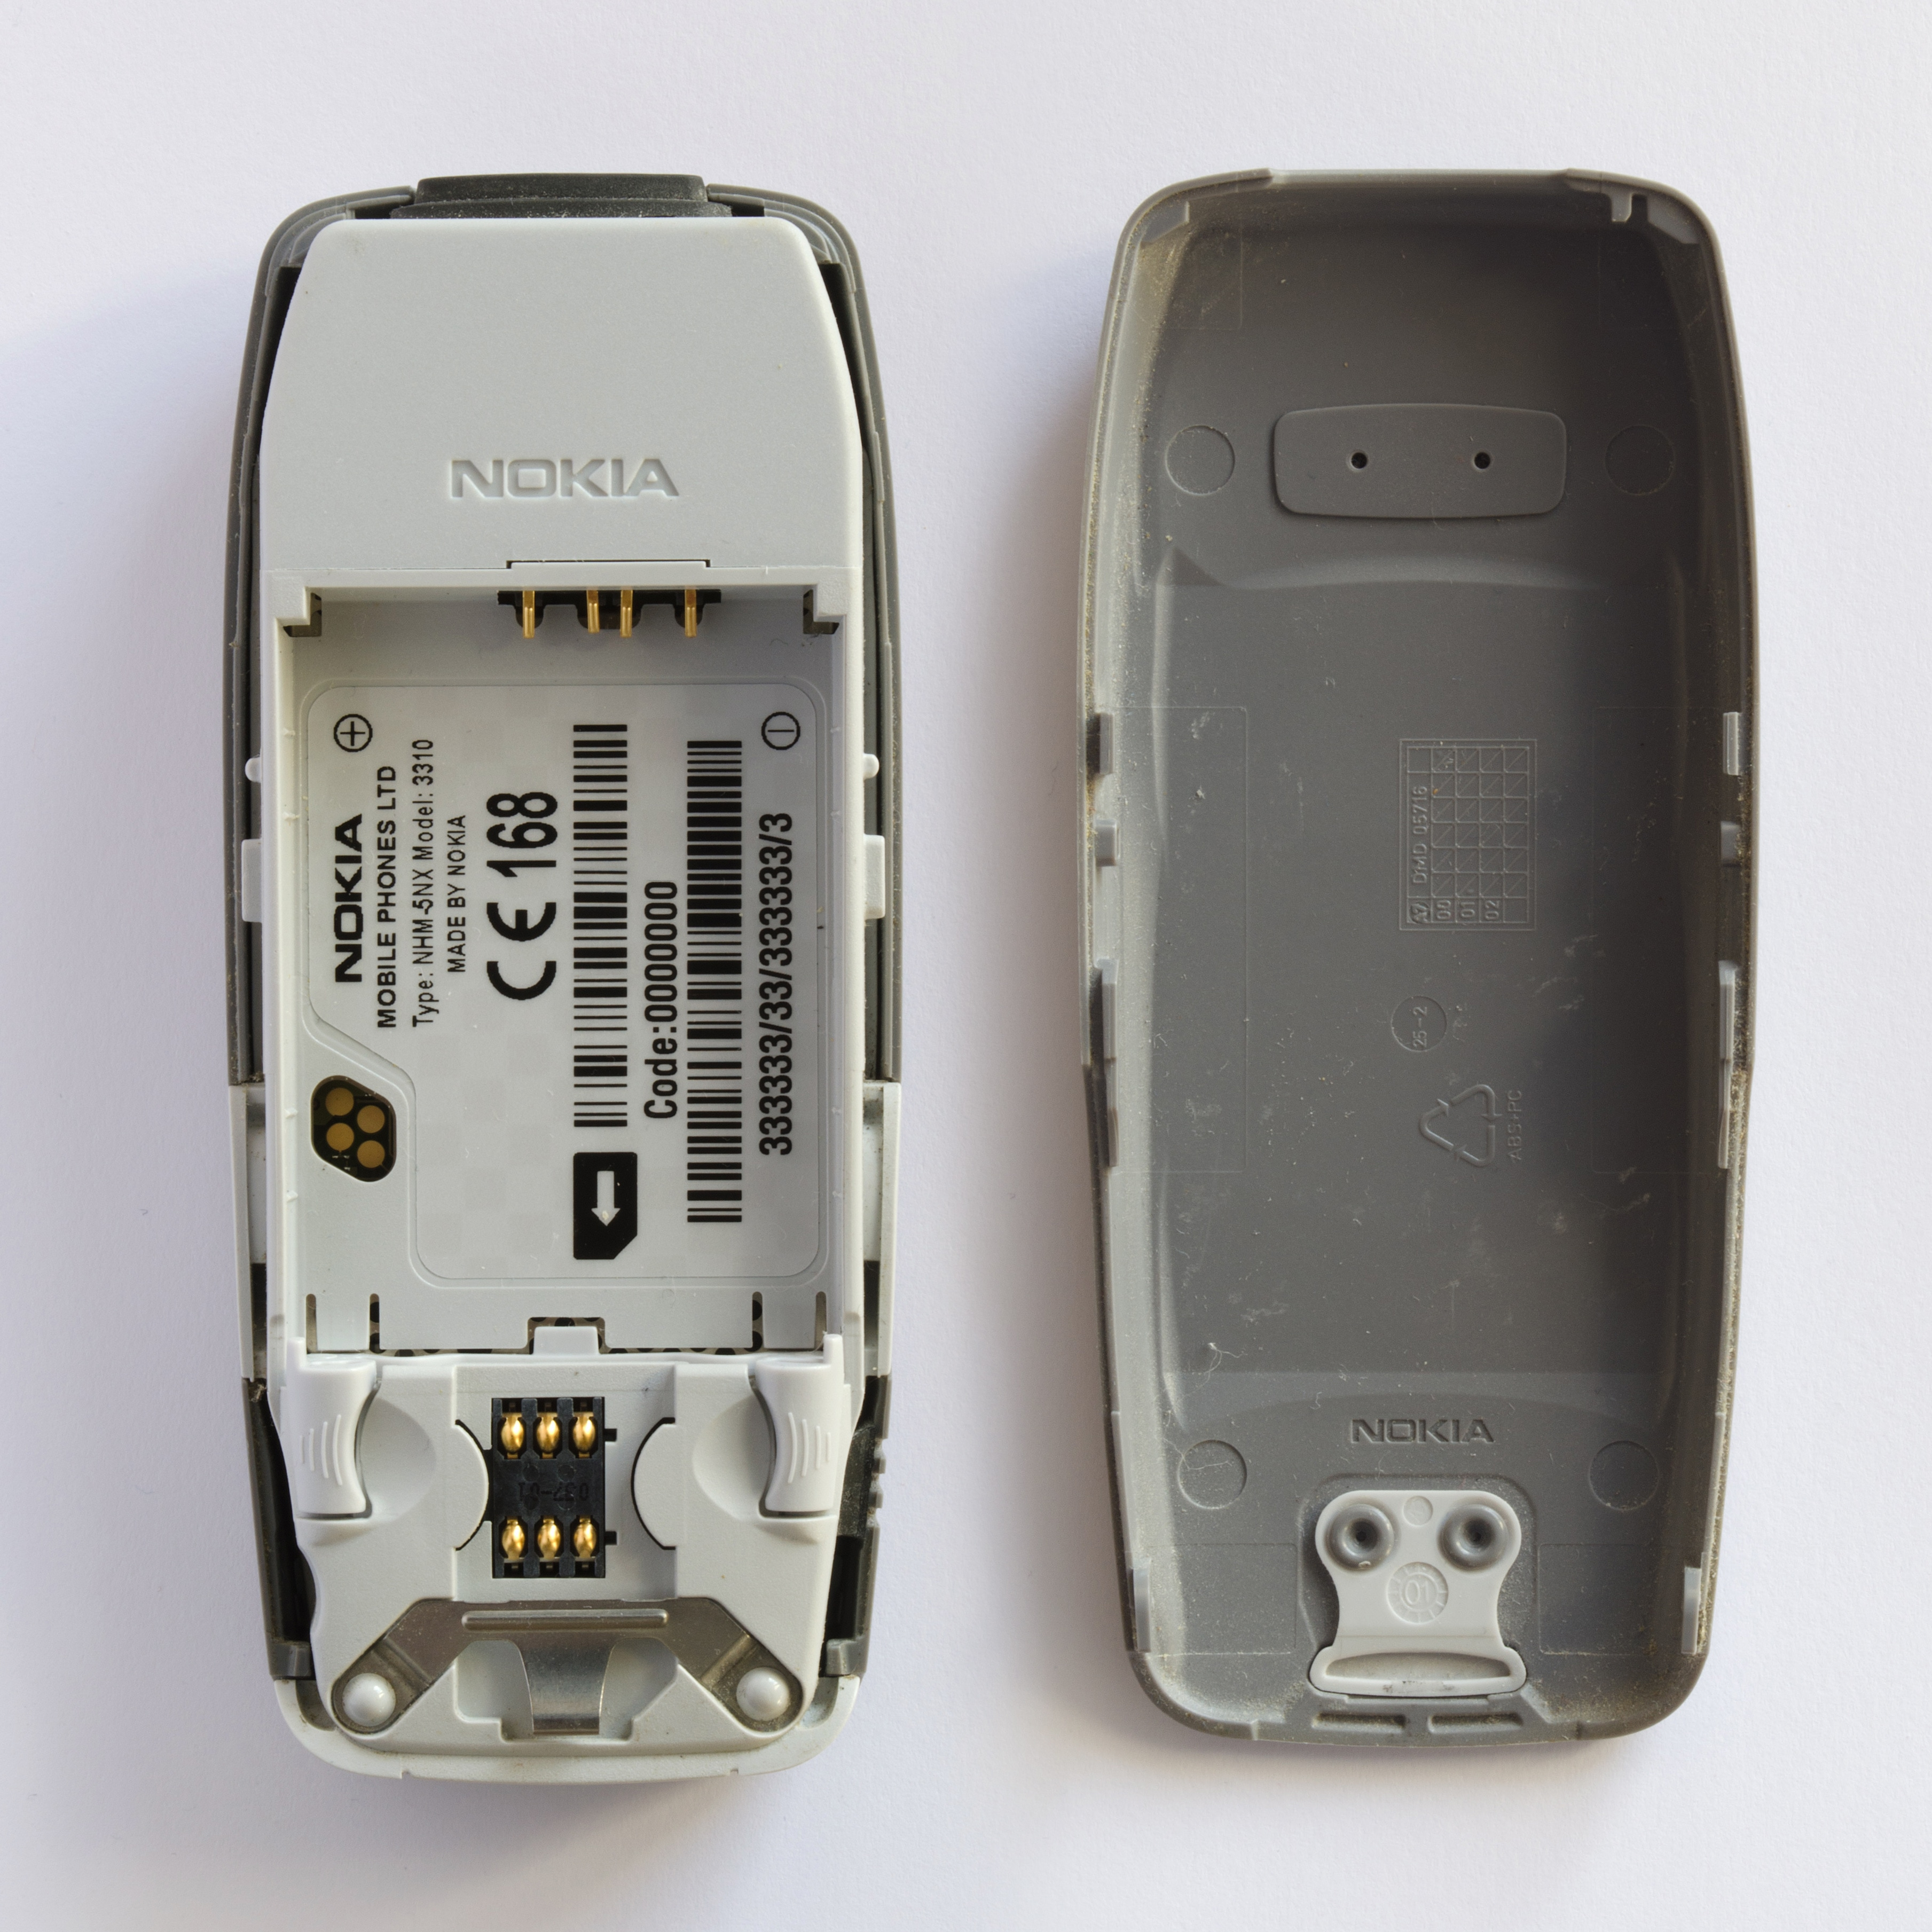 It had a bunch of utilities such as calculator, Nokia network monitor, stopwatch and a reminder function that were unique to the phone. It had four games Pairs II, Space Impact, Bantumi and the hugely popular Snake II.